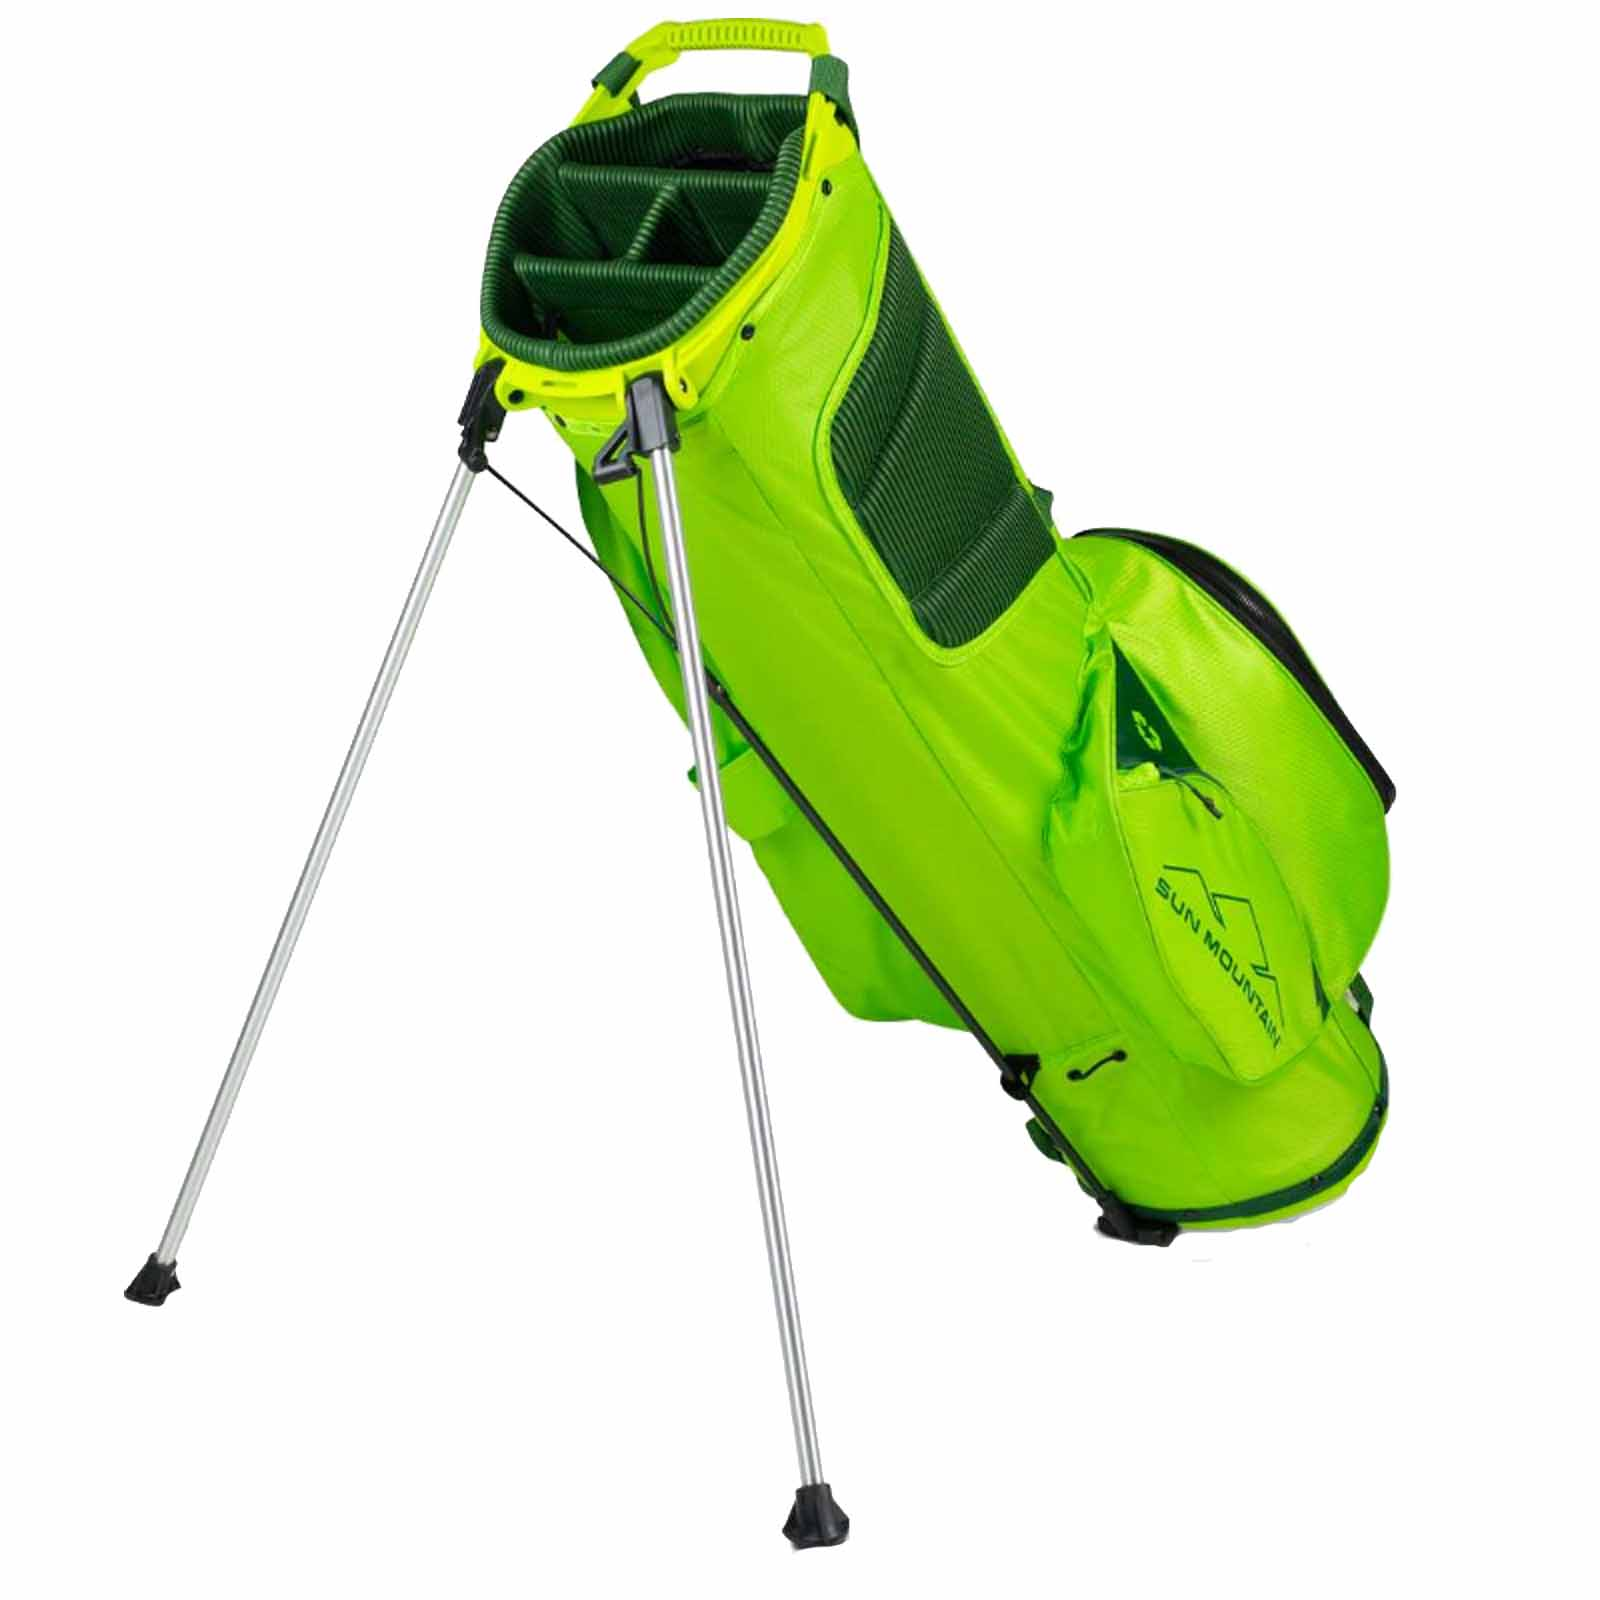 thumbnail 9 - 2021 Sun Mountain Eco-Lite Golf Stand Carry Bag Dual Carry Strap 4-Way Divider